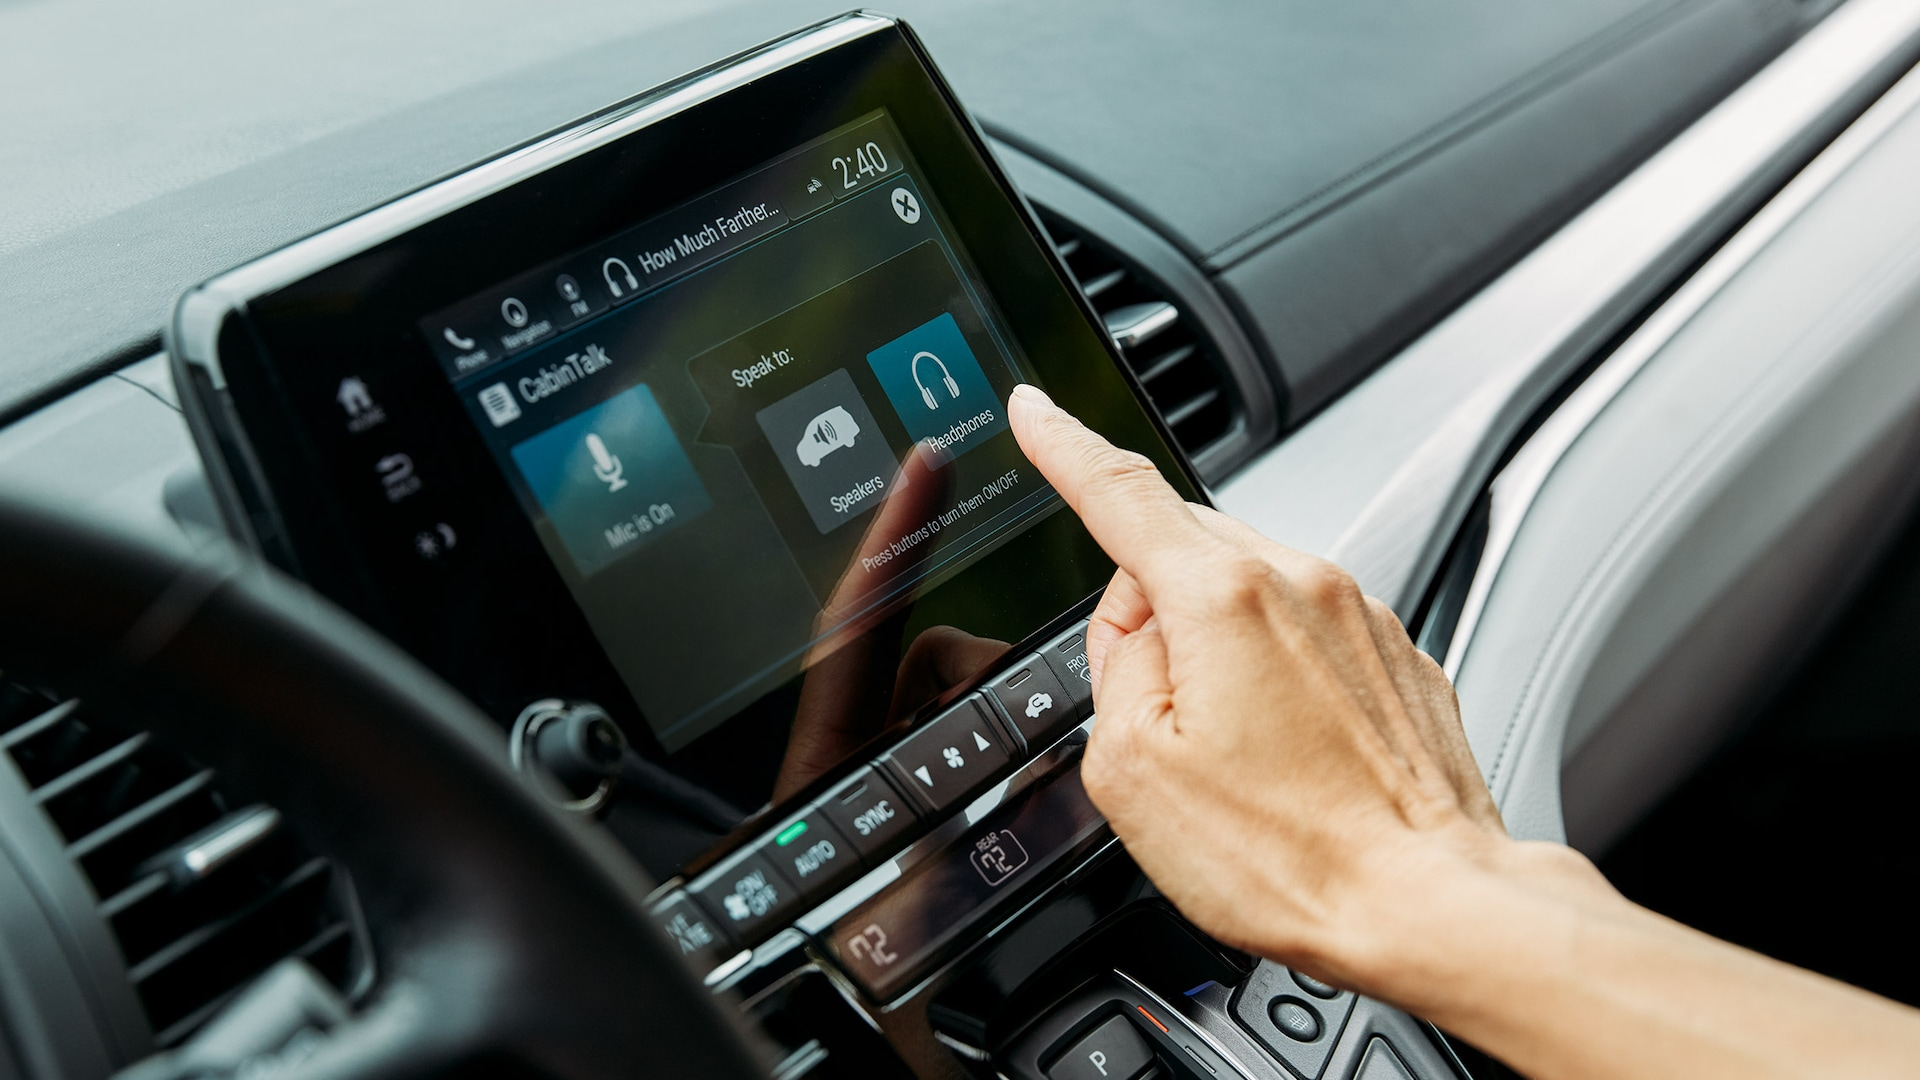 8-Inch Display Audio touch-screen detail in 2020 Honda Odyssey Elite with Gray Leather.